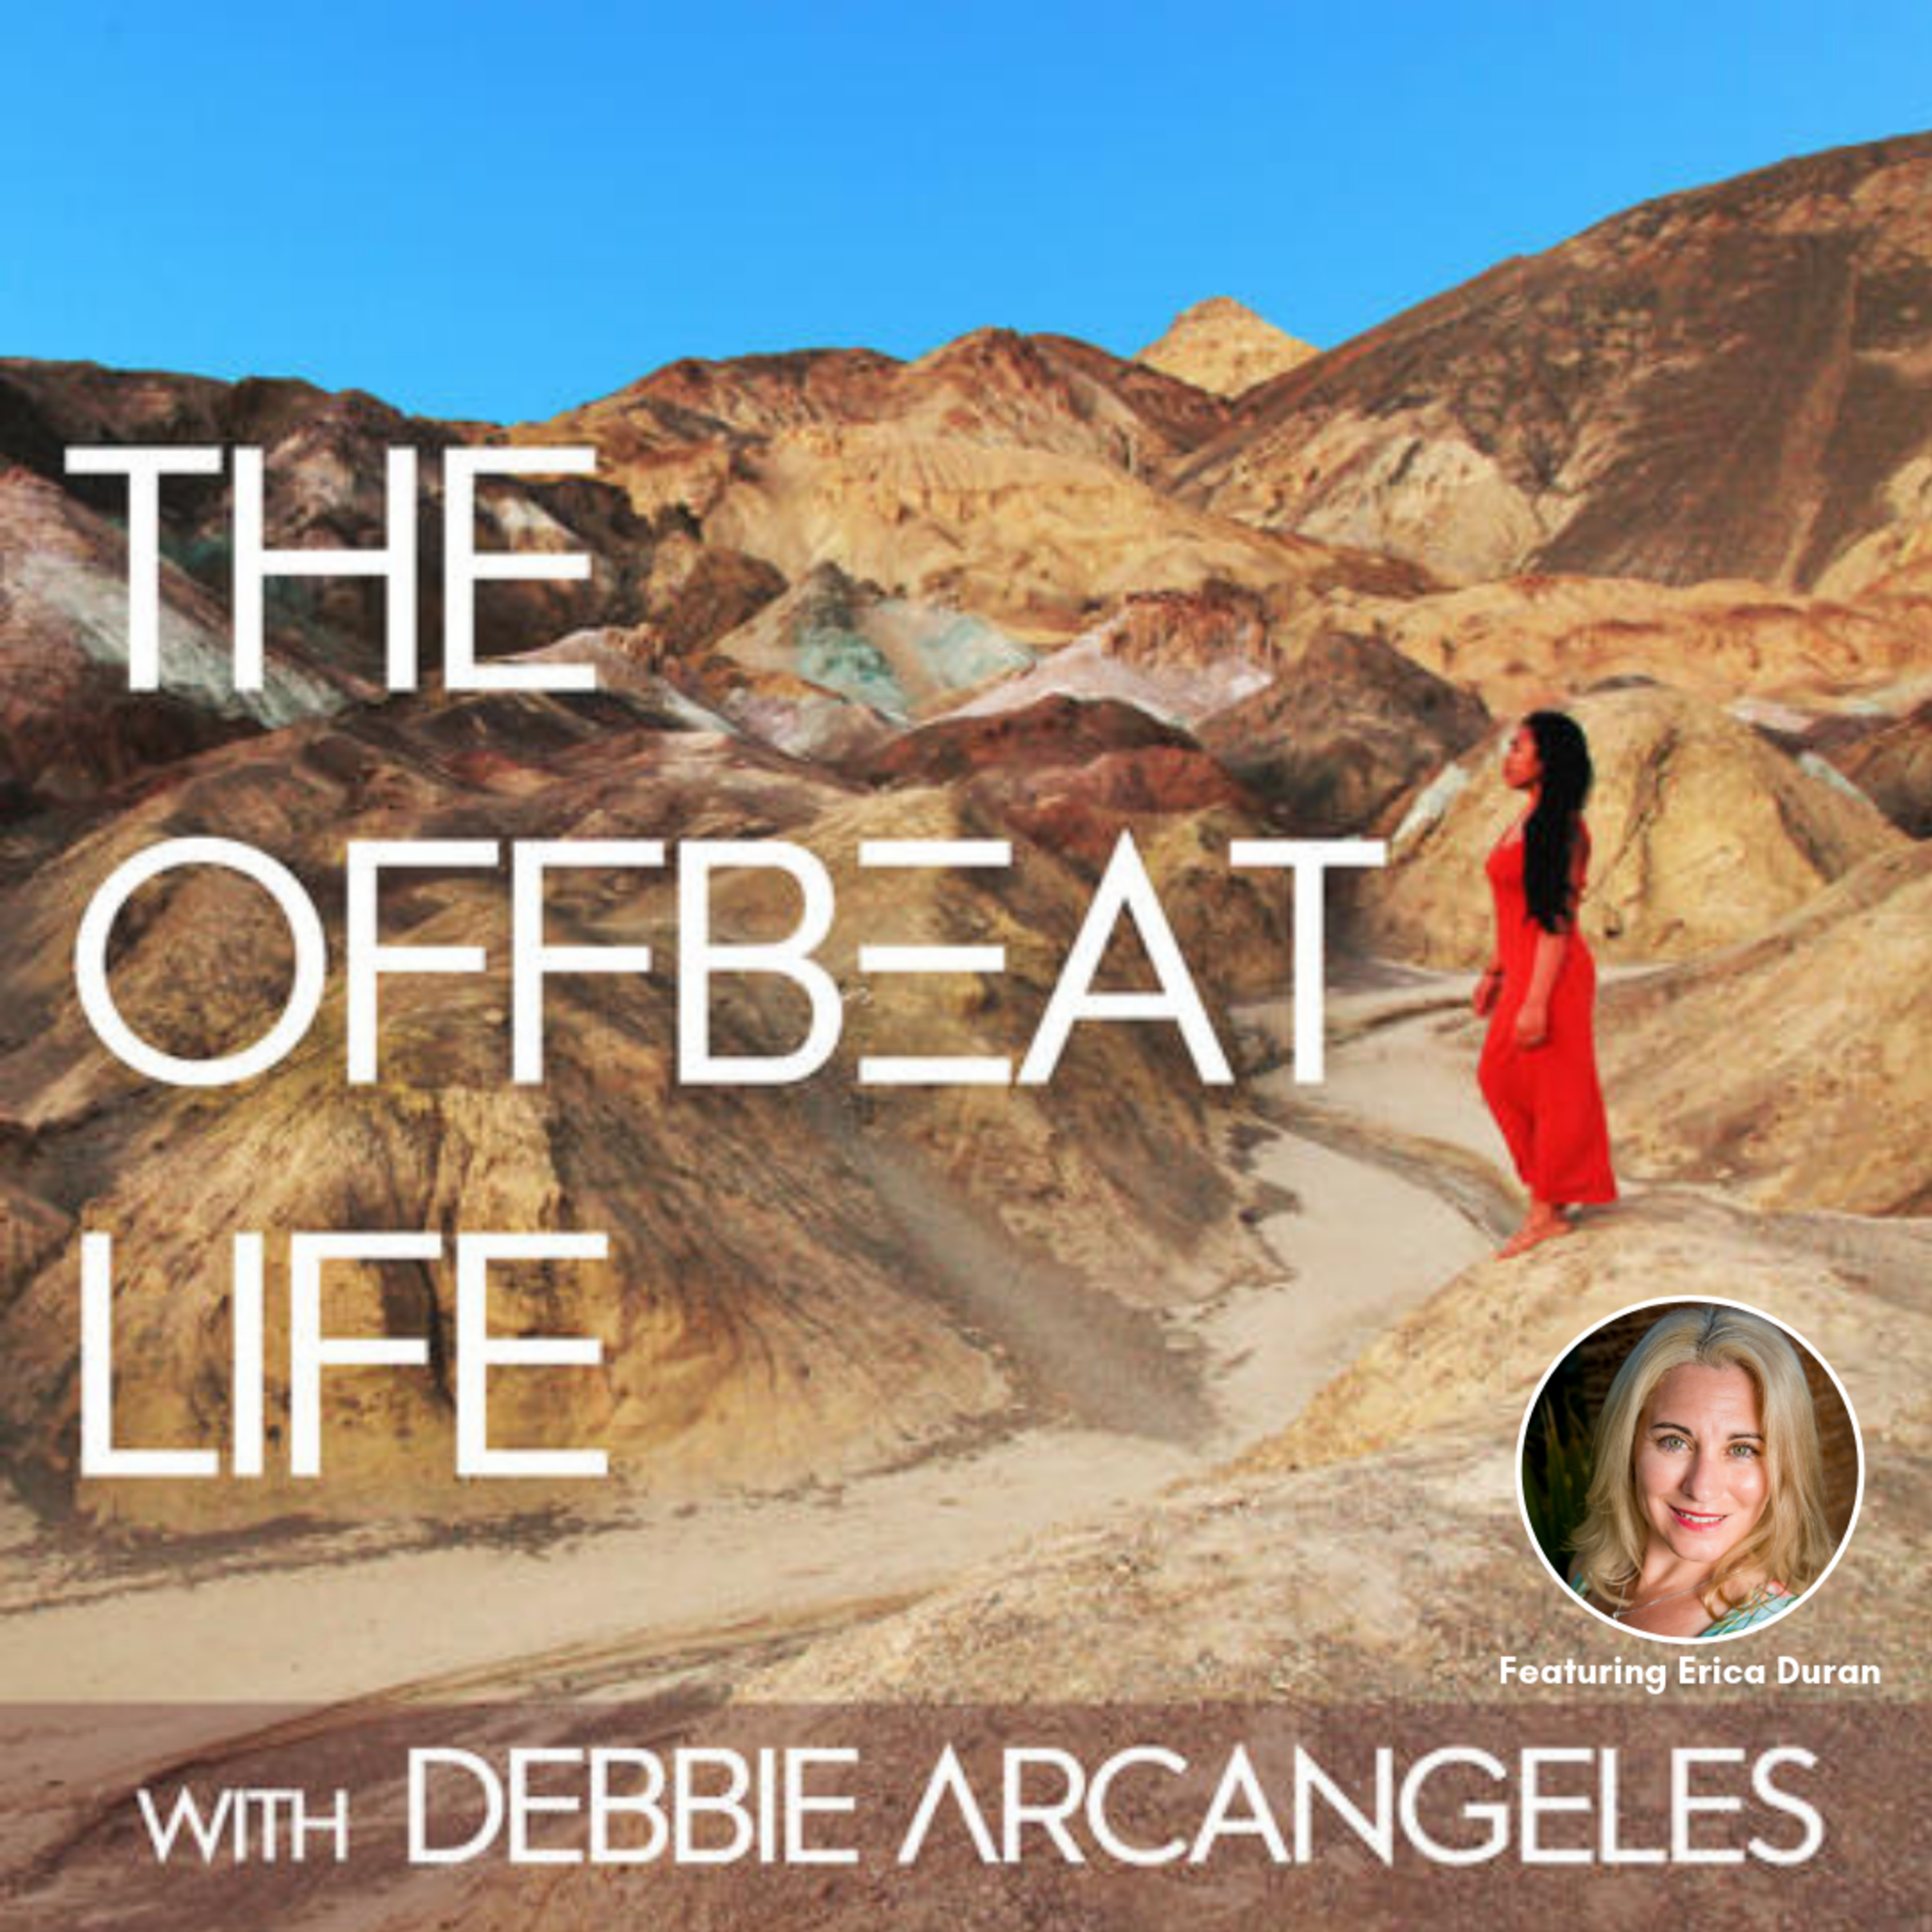 [Interview Series Ep 177] Erica Duran on the Offbeat Life Podcast